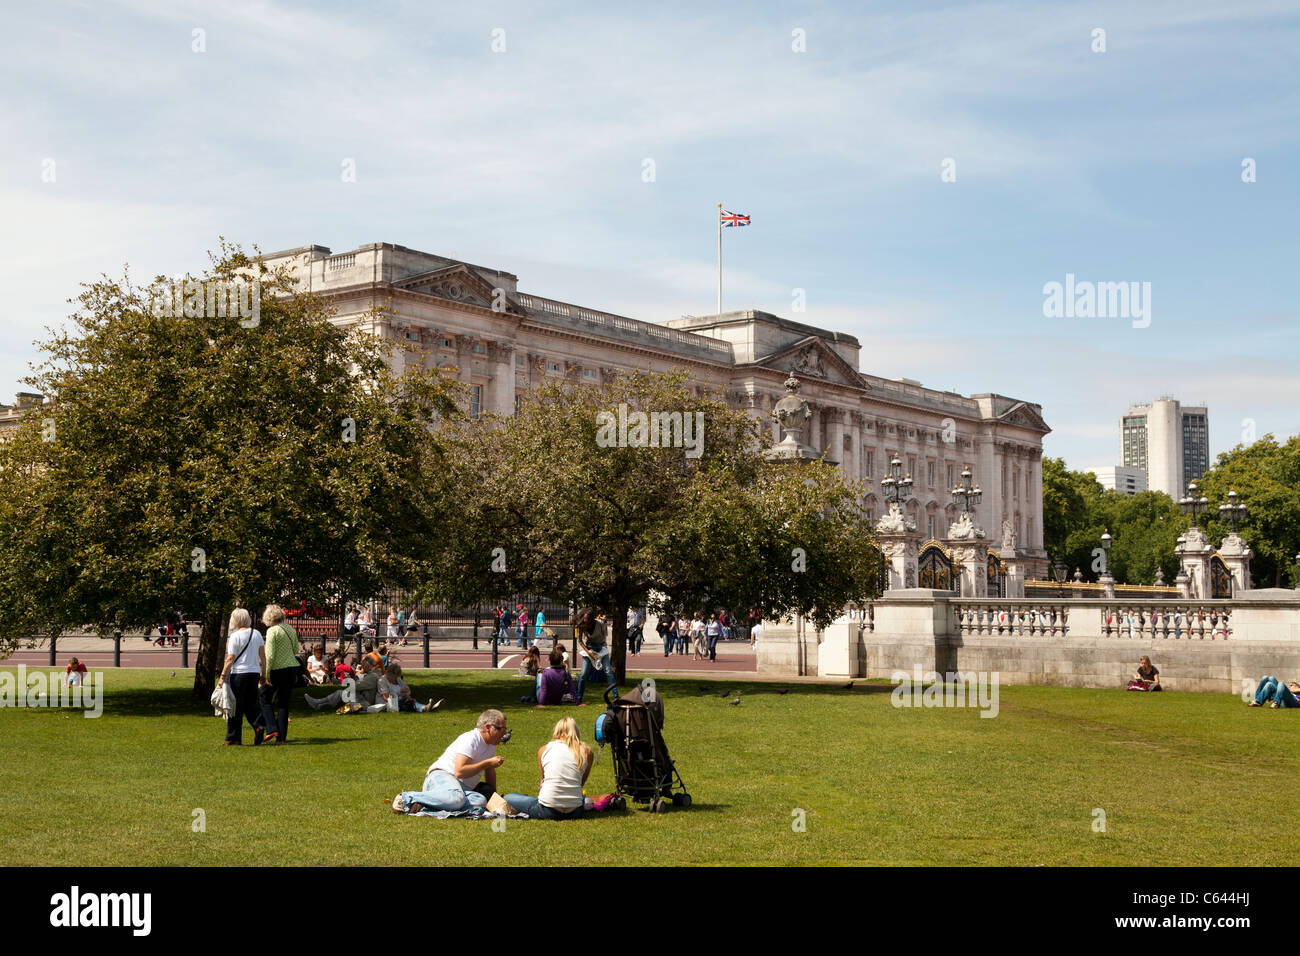 Tourists resting on the grass outside Buckingham Palace - Stock Image